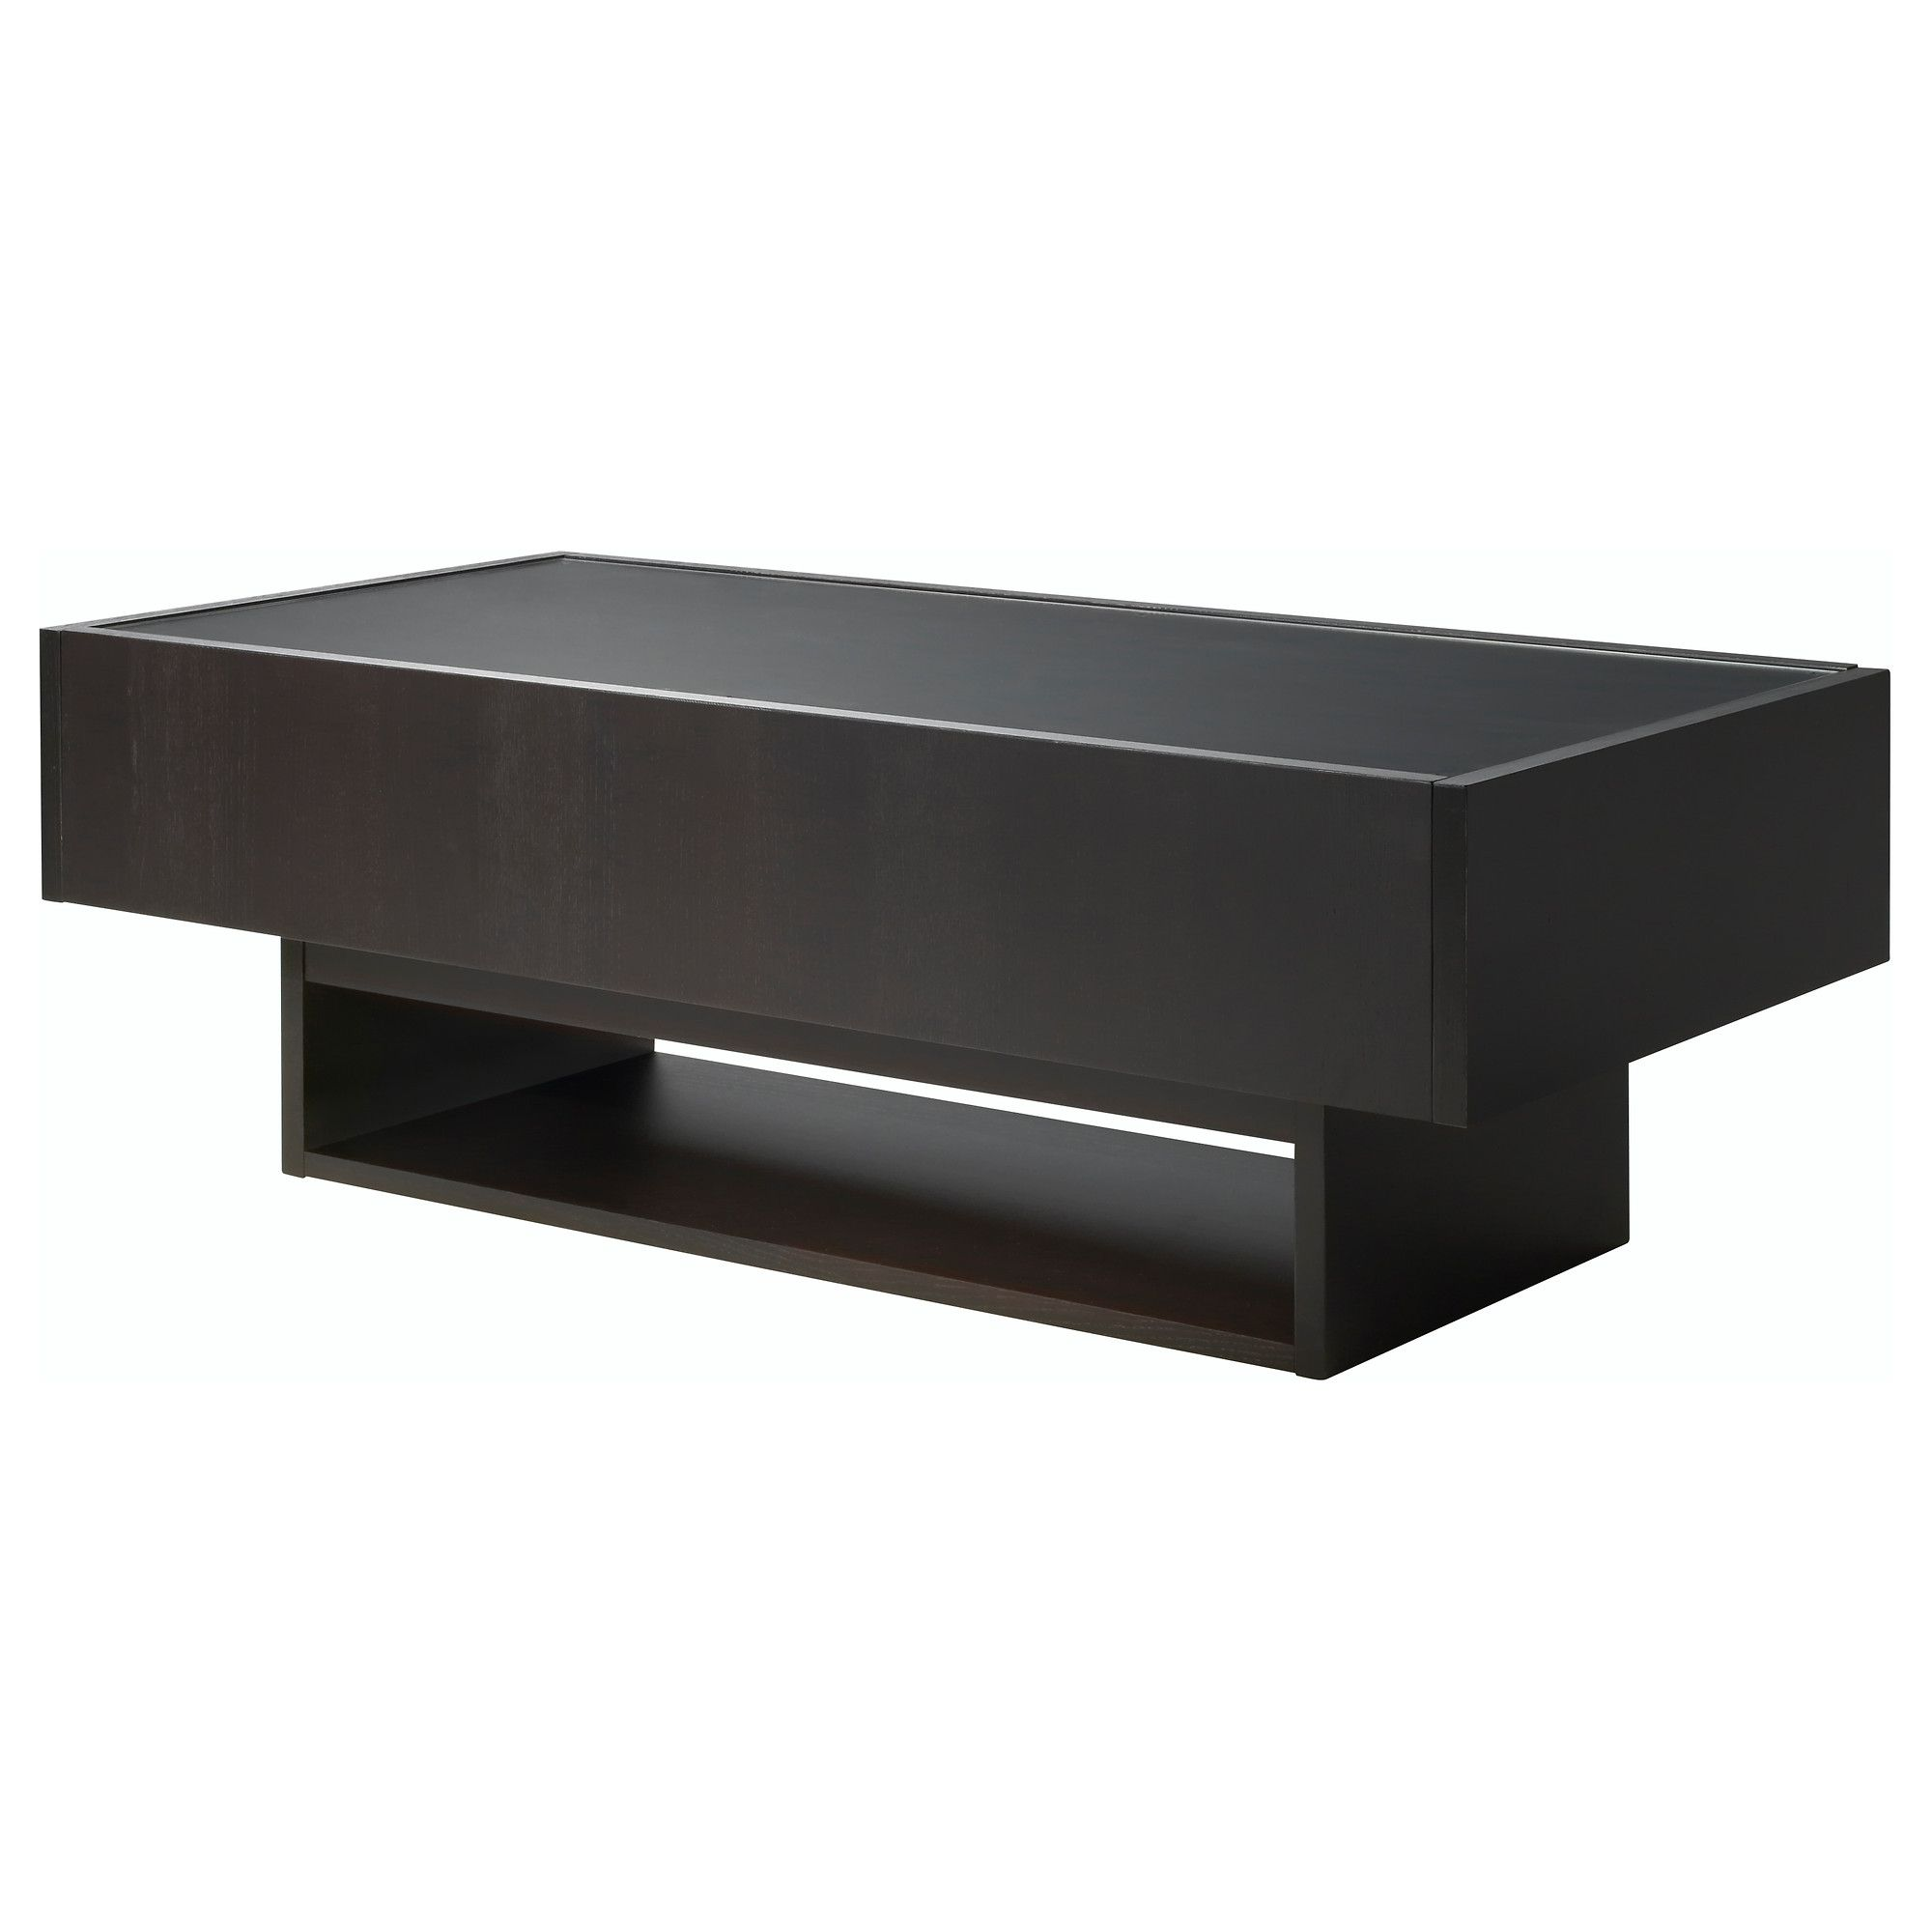 $200 RAMVIK Coffee table IKEA Greenview ideas